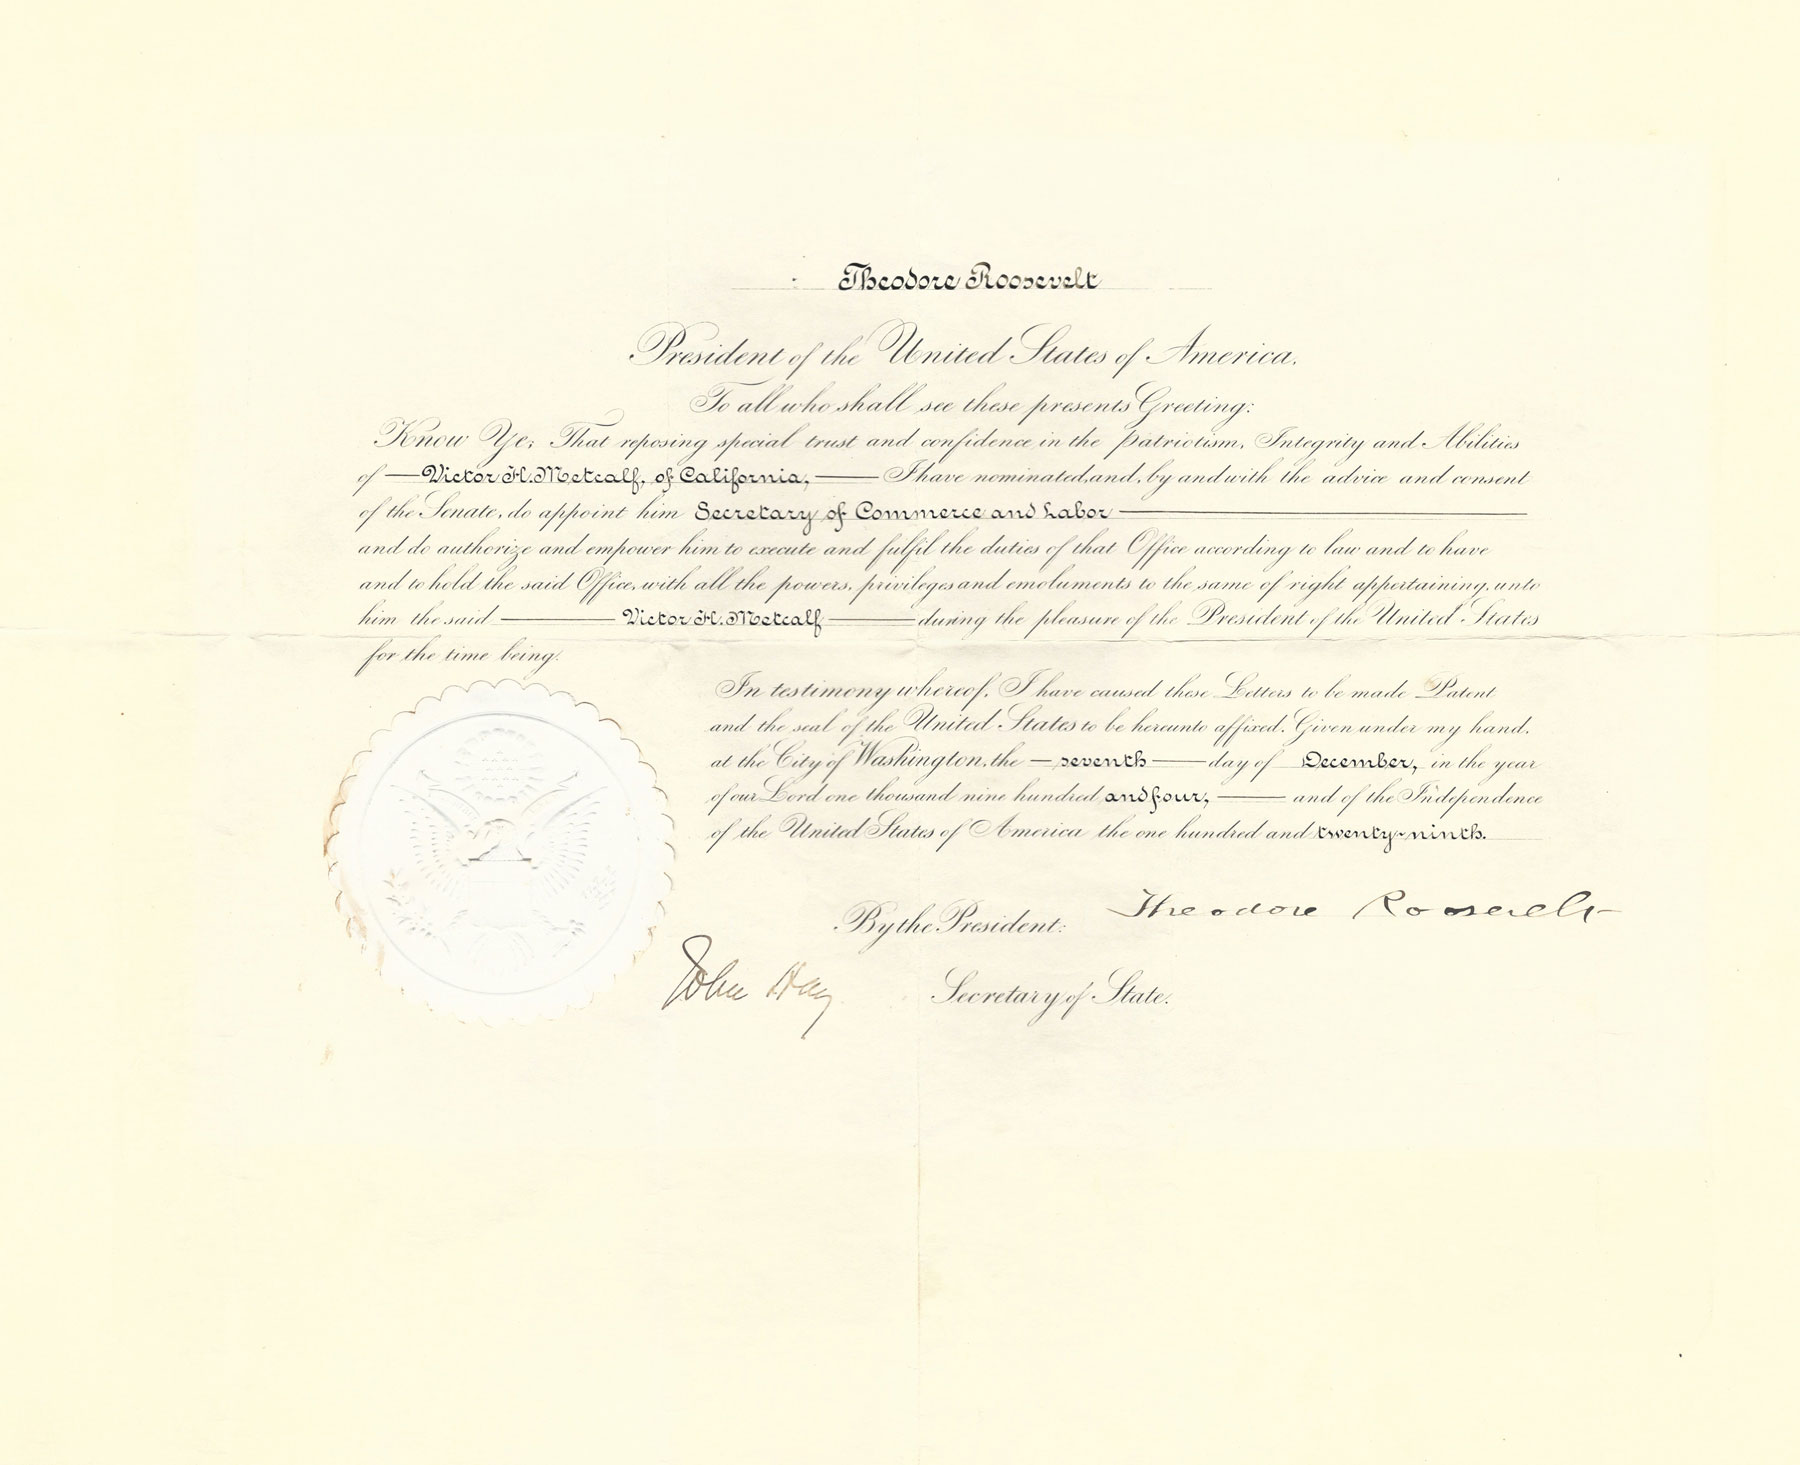 Authentic Document of President Theodore Roosevelt Appointing Victor H. Metcalf Secretary of Commerce and Labor